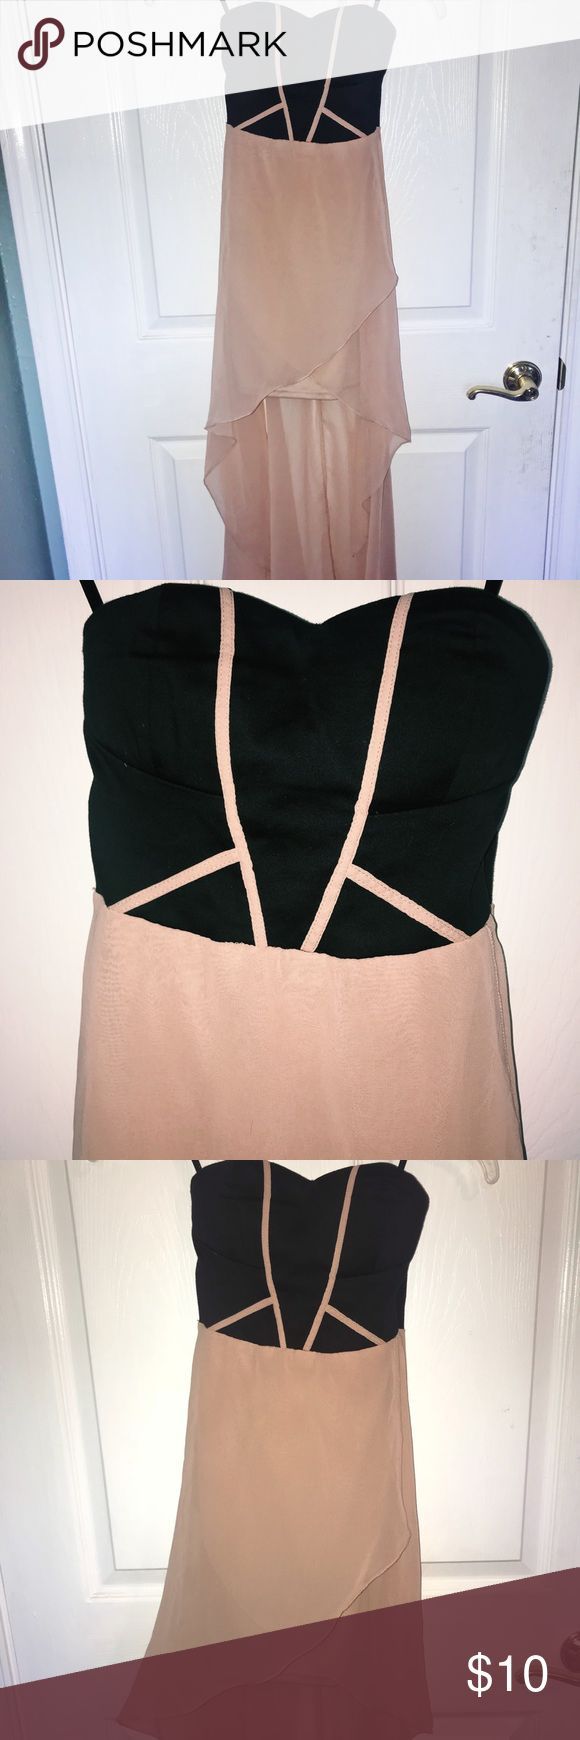 HIGH LOW STRAPLESS DRESS Charlotte rouse pink and black geometric dress. High-low. Strapless. Charlotte Russe Dresses High Low